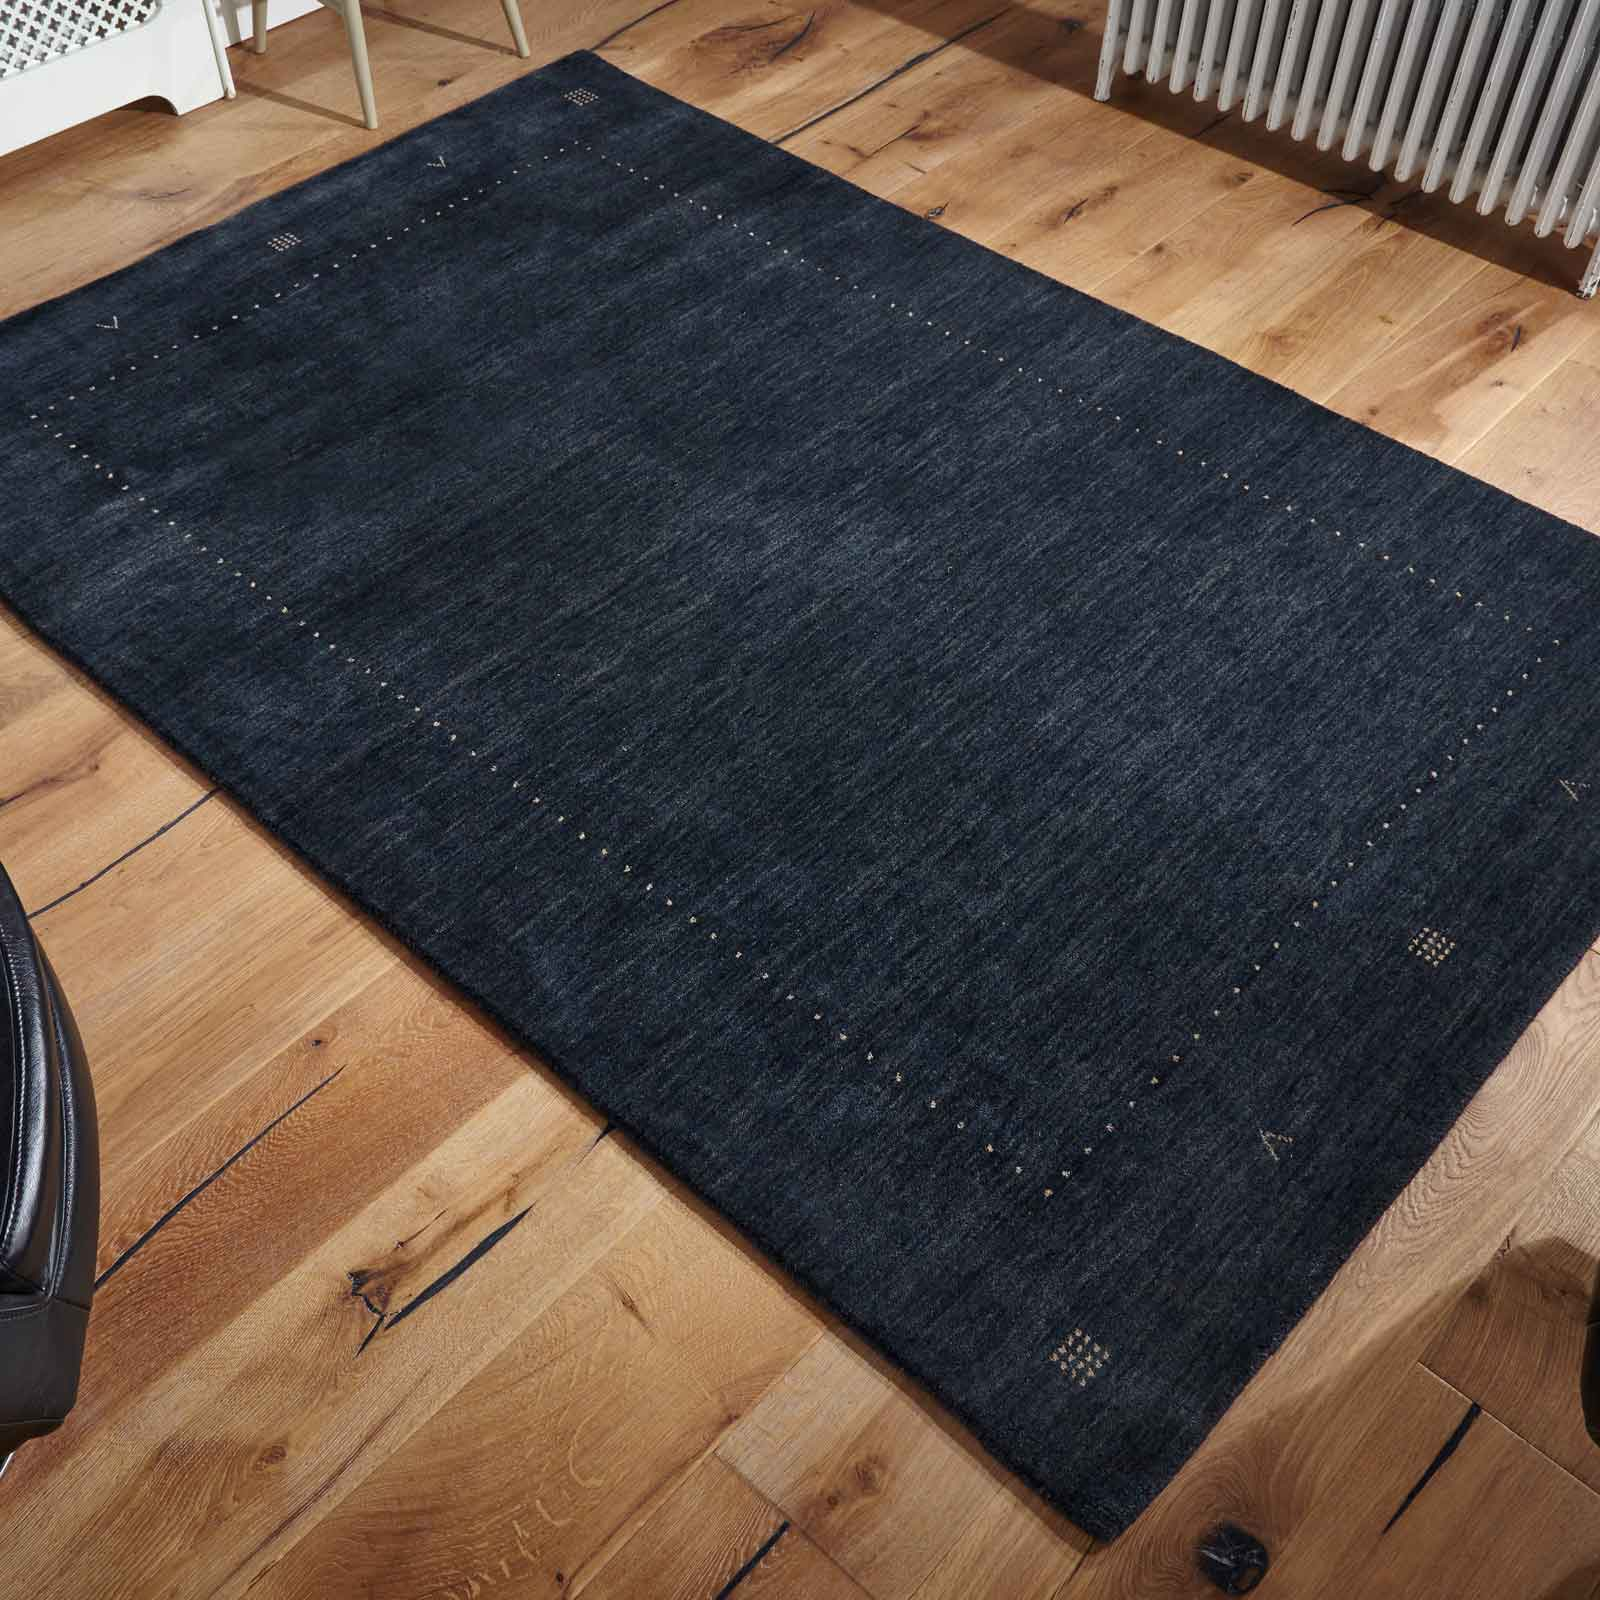 Loriana Rugs in Charcoal Grey